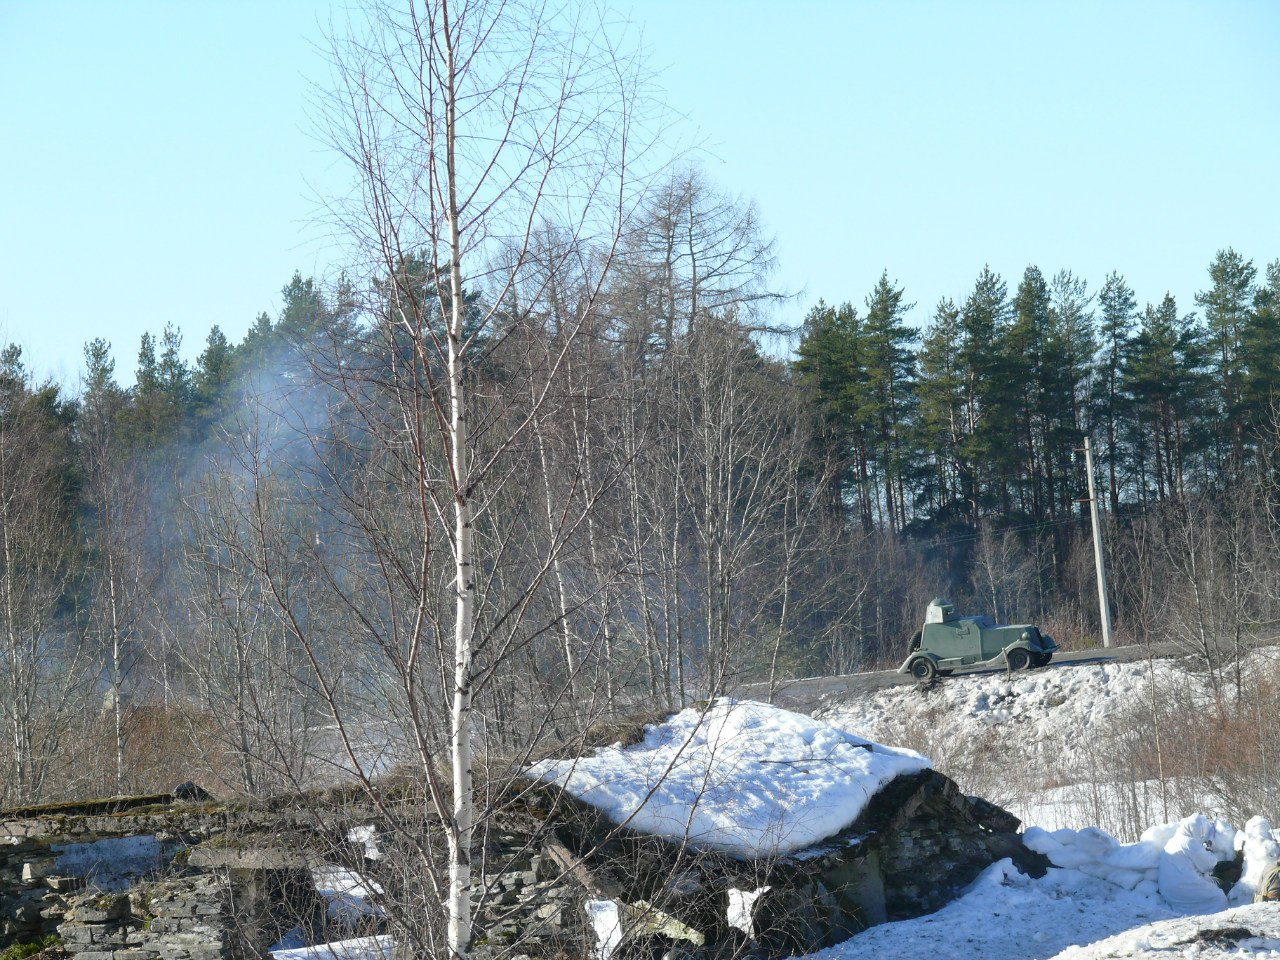 March 15, 2015. Pitkäranta. Winter Festival, 2015